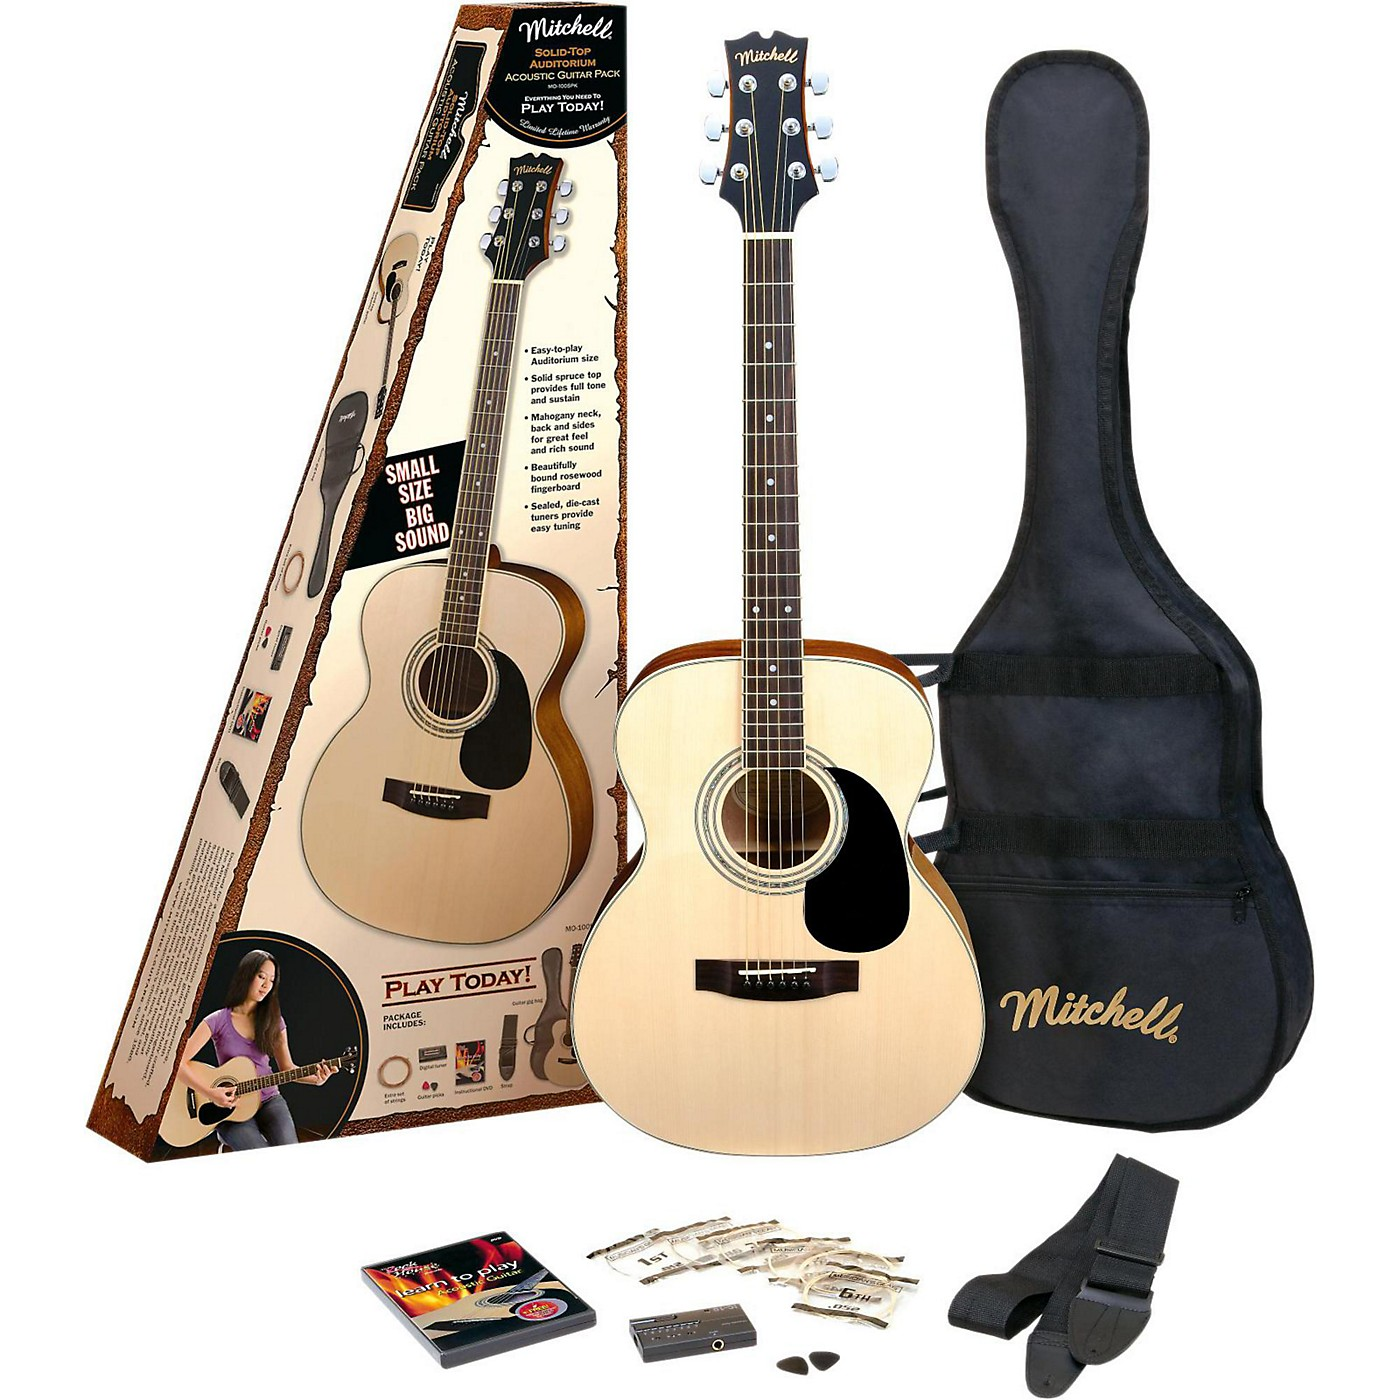 Mitchell O120SPK Acoustic Guitar Value Package thumbnail